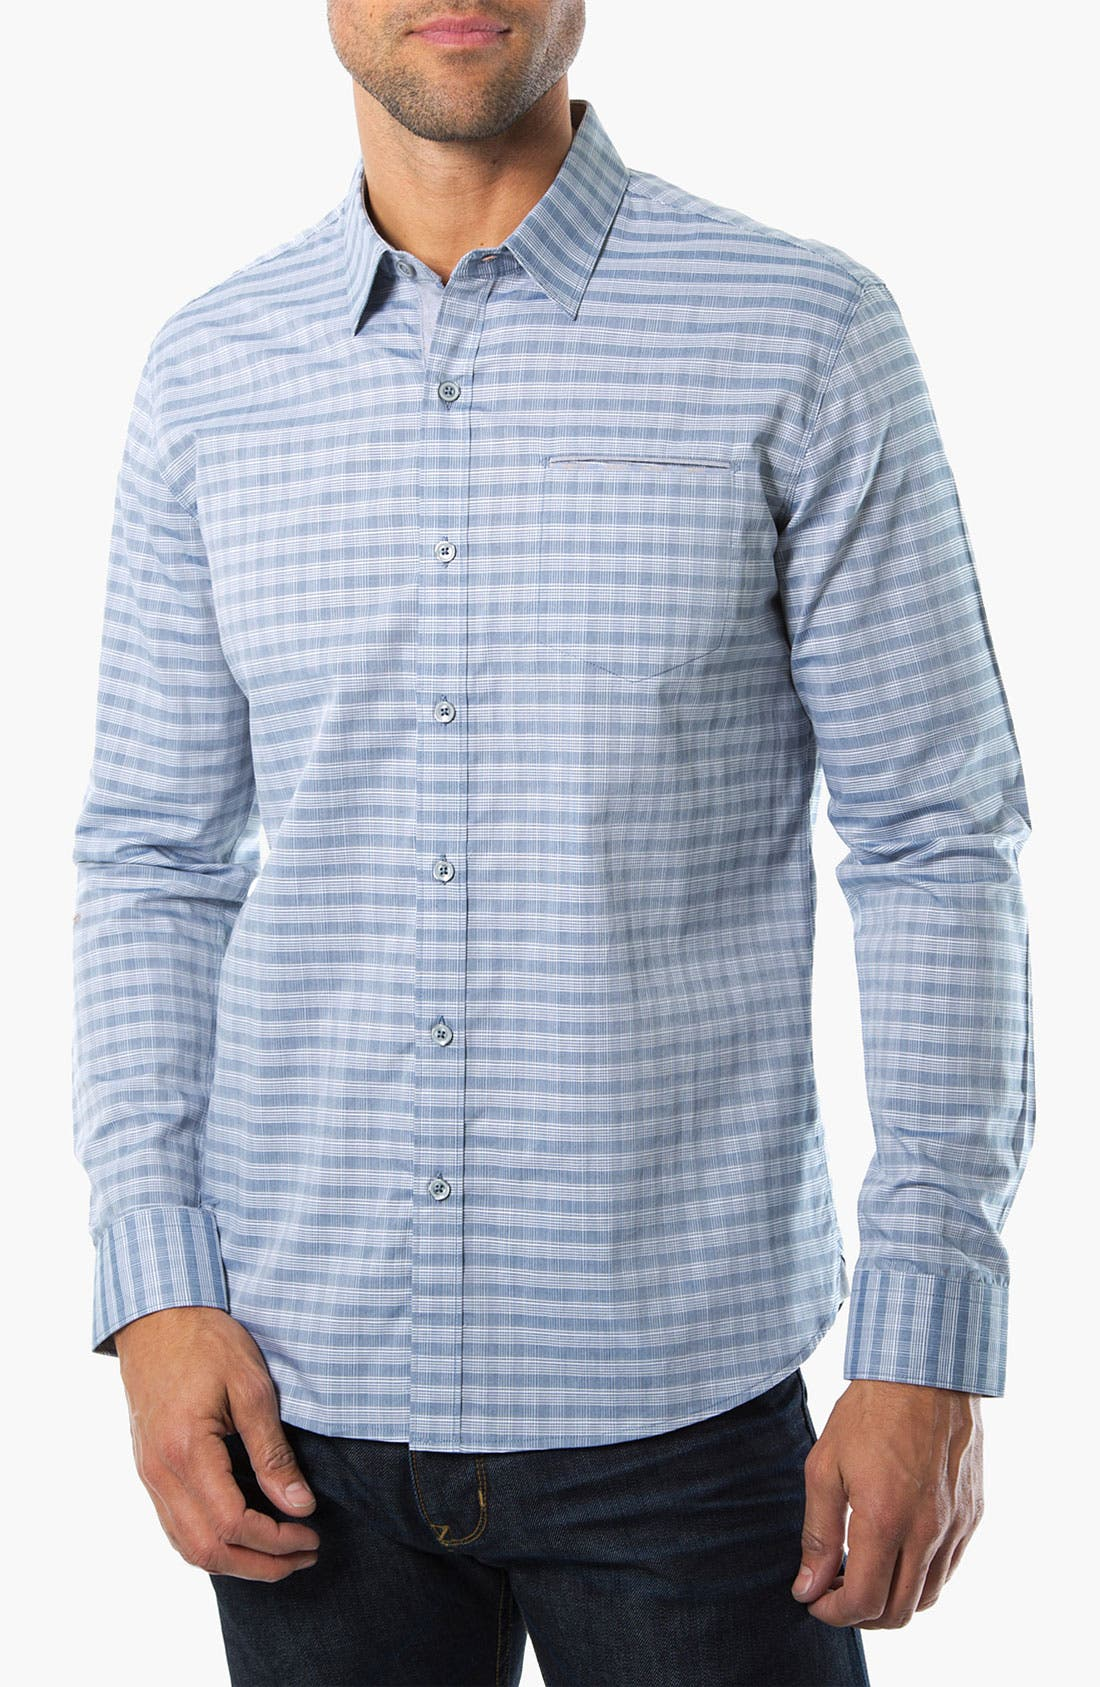 Alternate Image 1 Selected - 7 Diamonds 'Good Life' Woven Sport Shirt